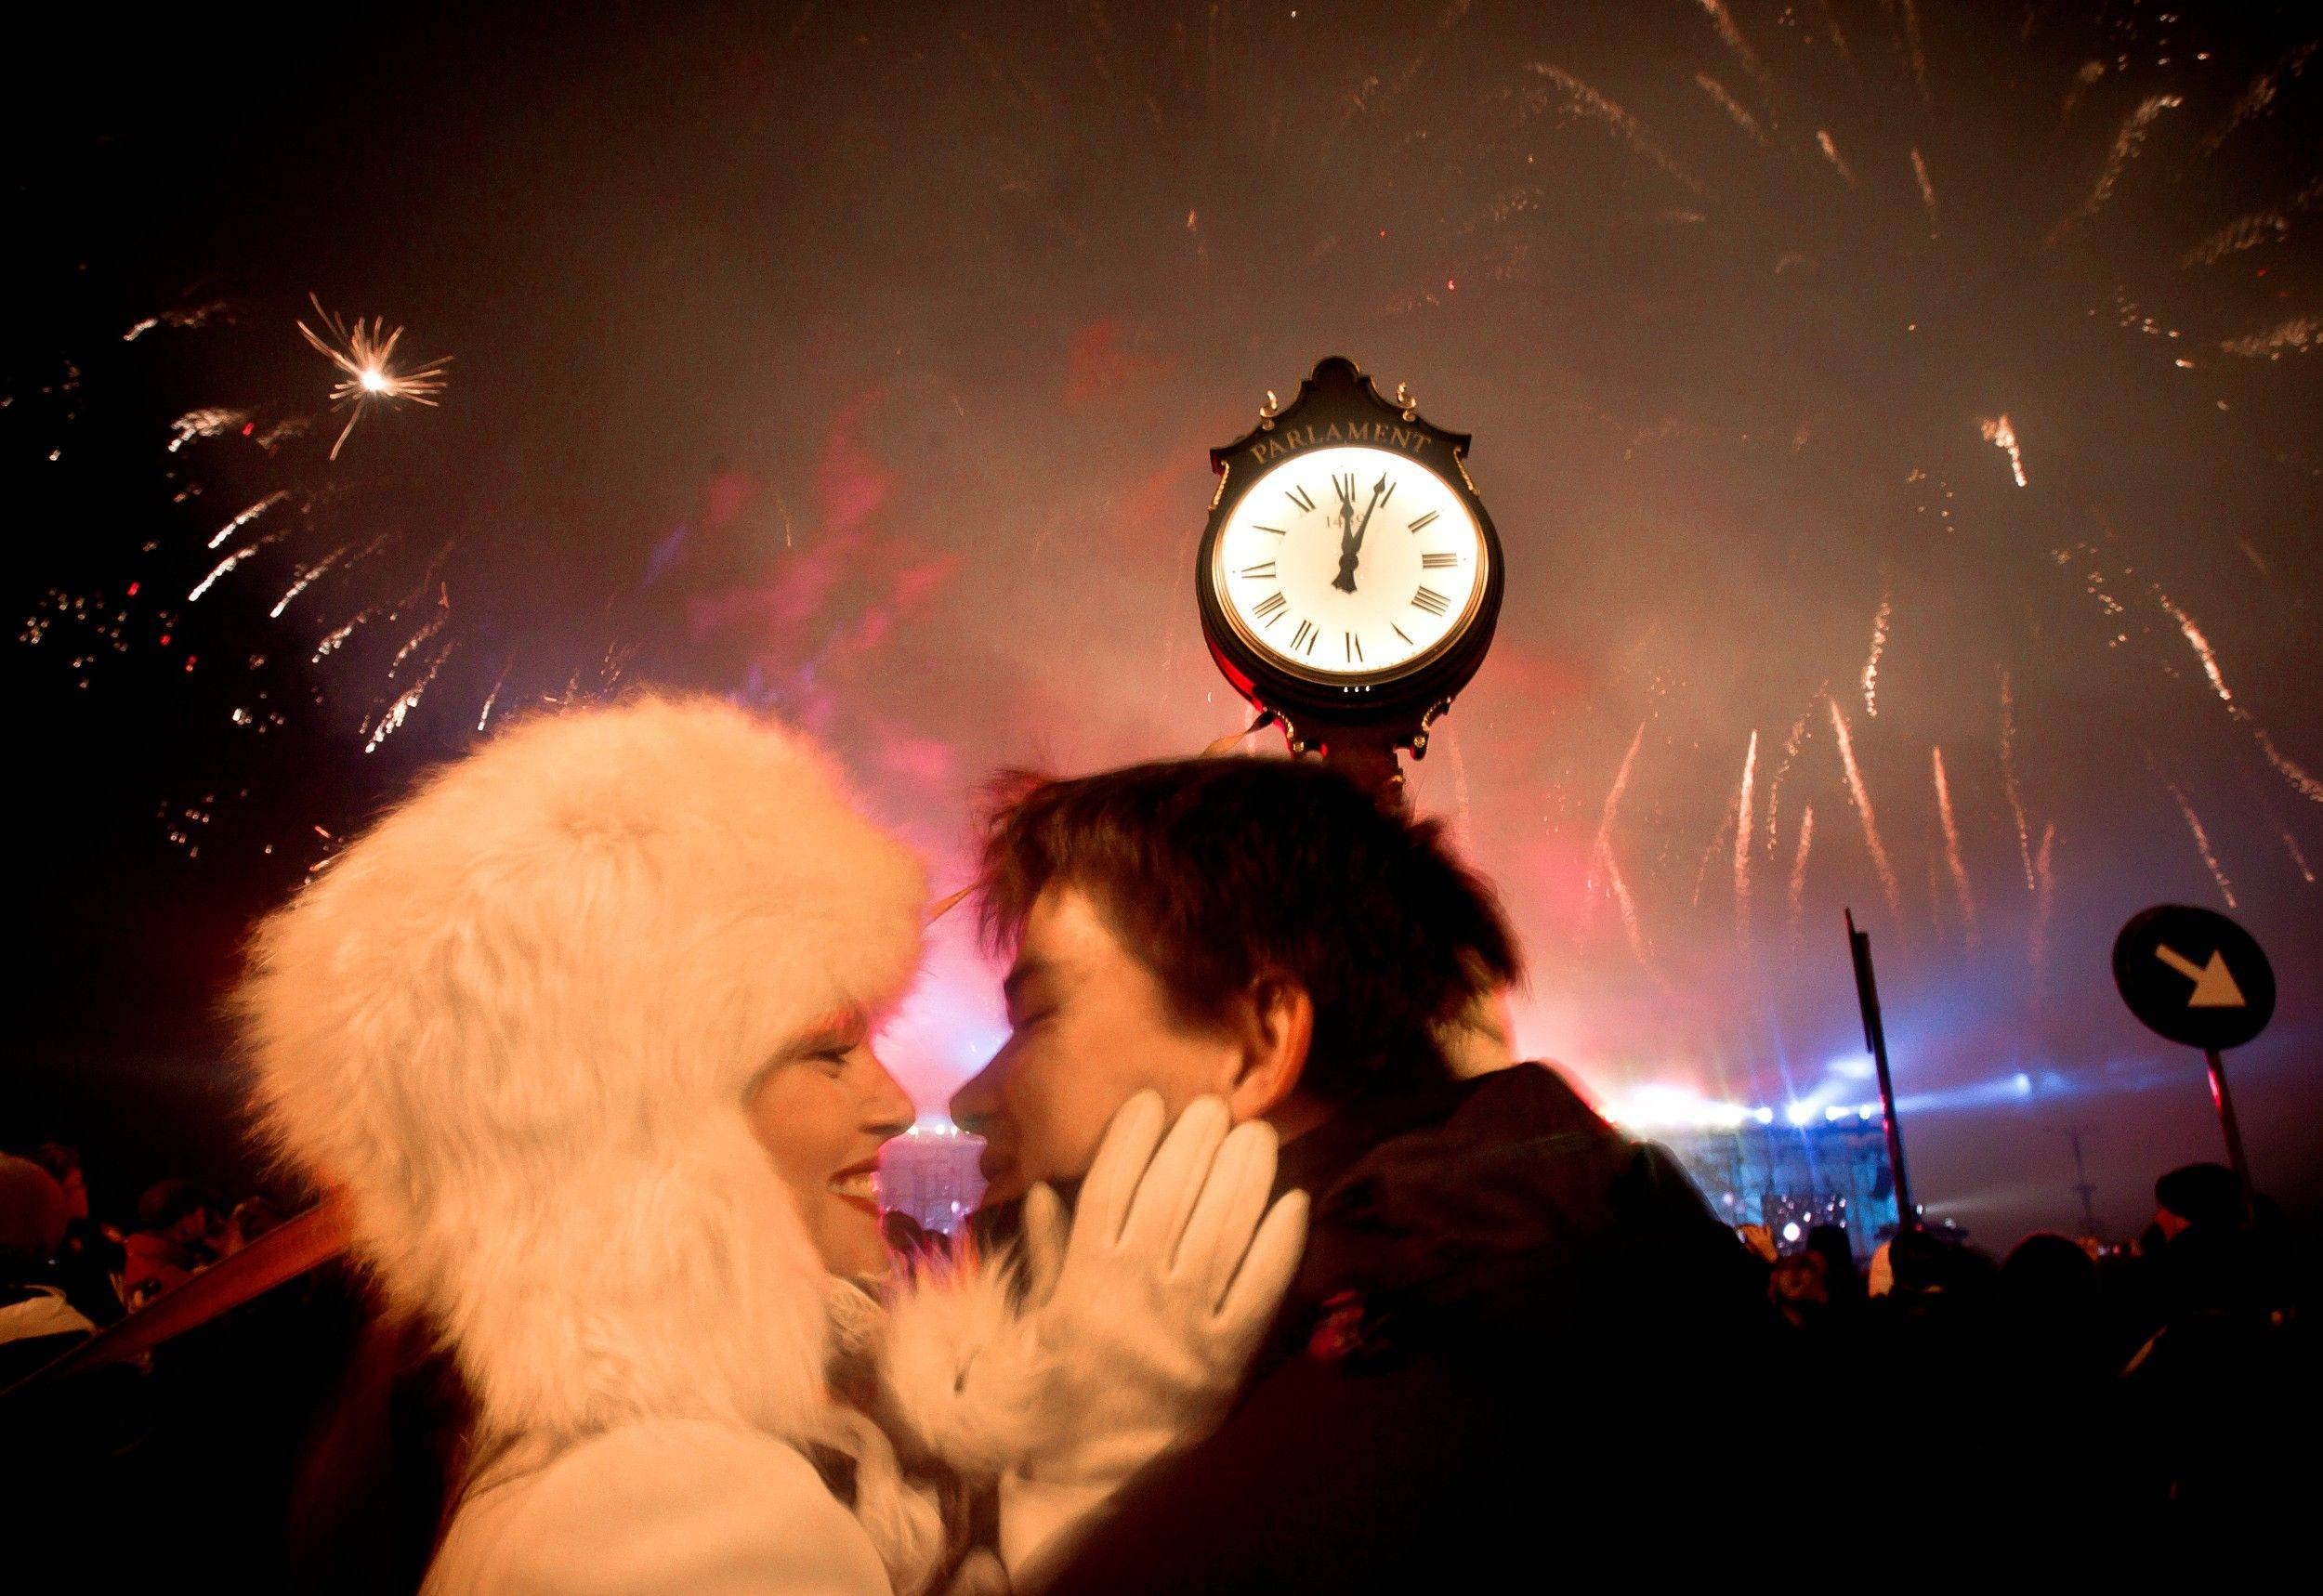 A couple kiss as fireworks explode in the sky over Bucharest, Romania, at midnight, Sunday, Jan. 1, 2012, during street celebrations of the new year. Large crowds gathered downtown Romania's capital taking advantage of the dry weather to attend the celebrations.